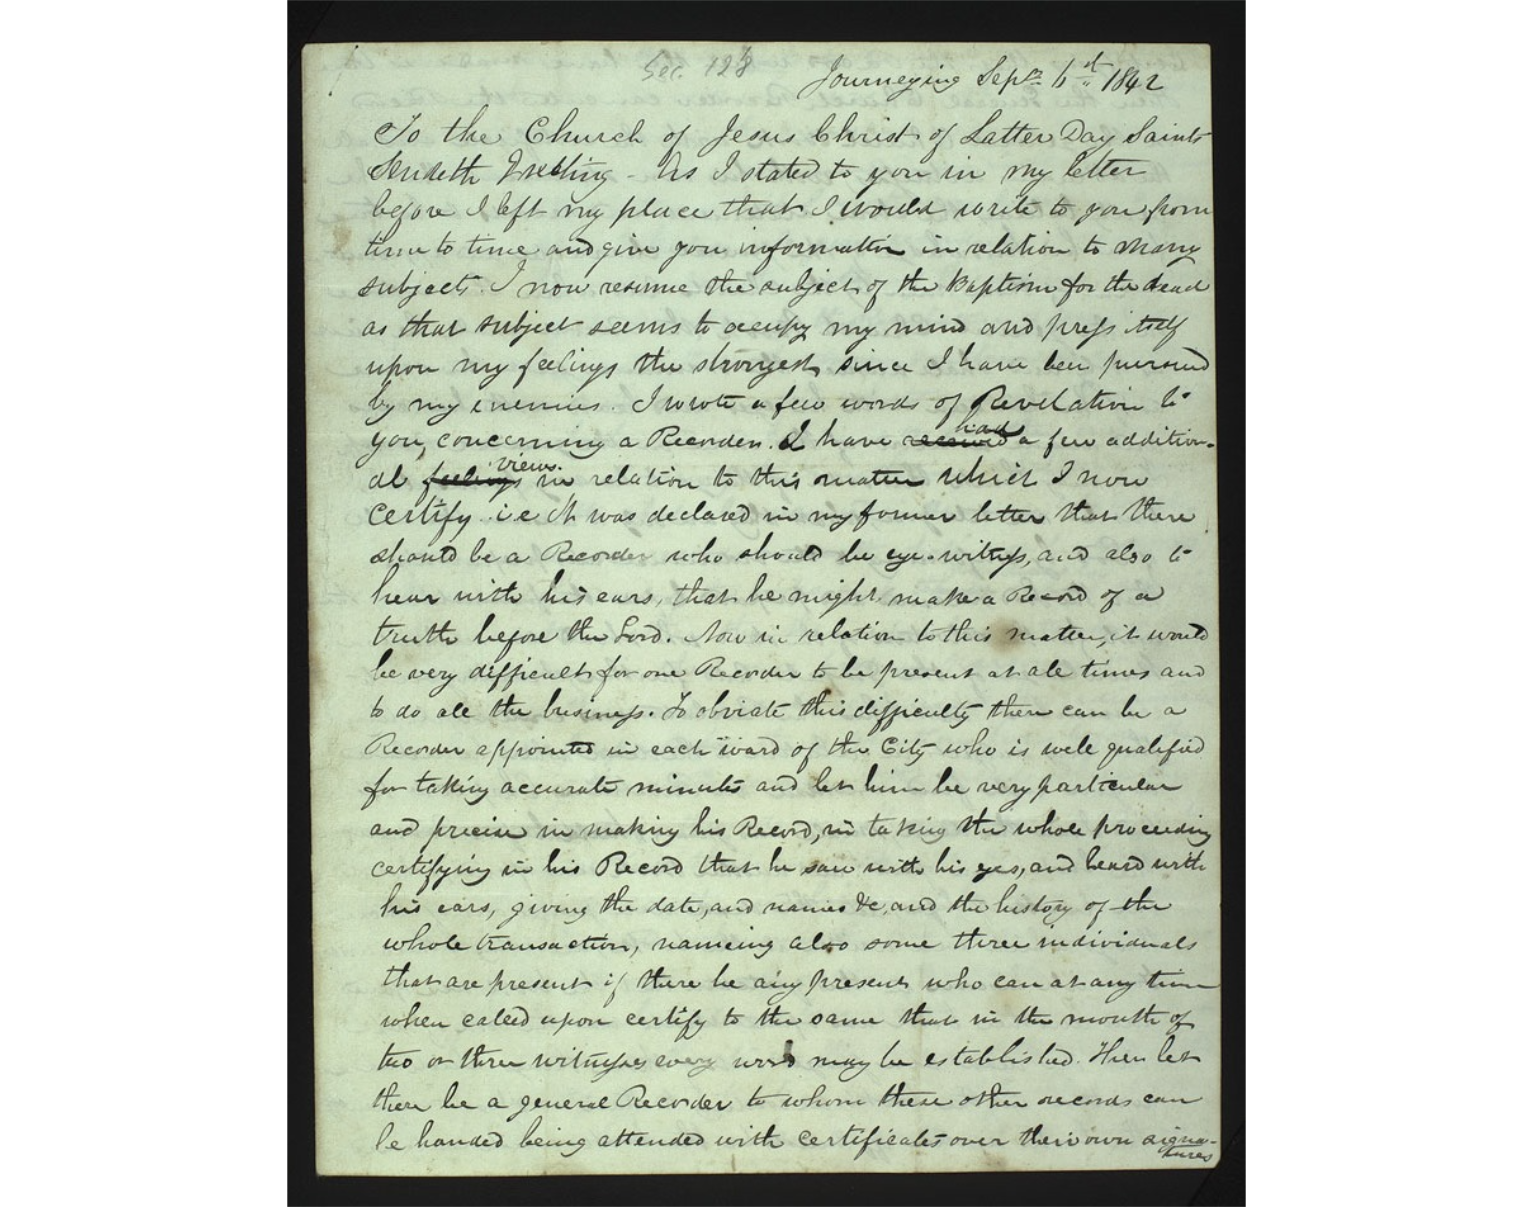 Book Review: The Joseph Smith Papers, Documents, Volume 11: September 1842 – February 1843